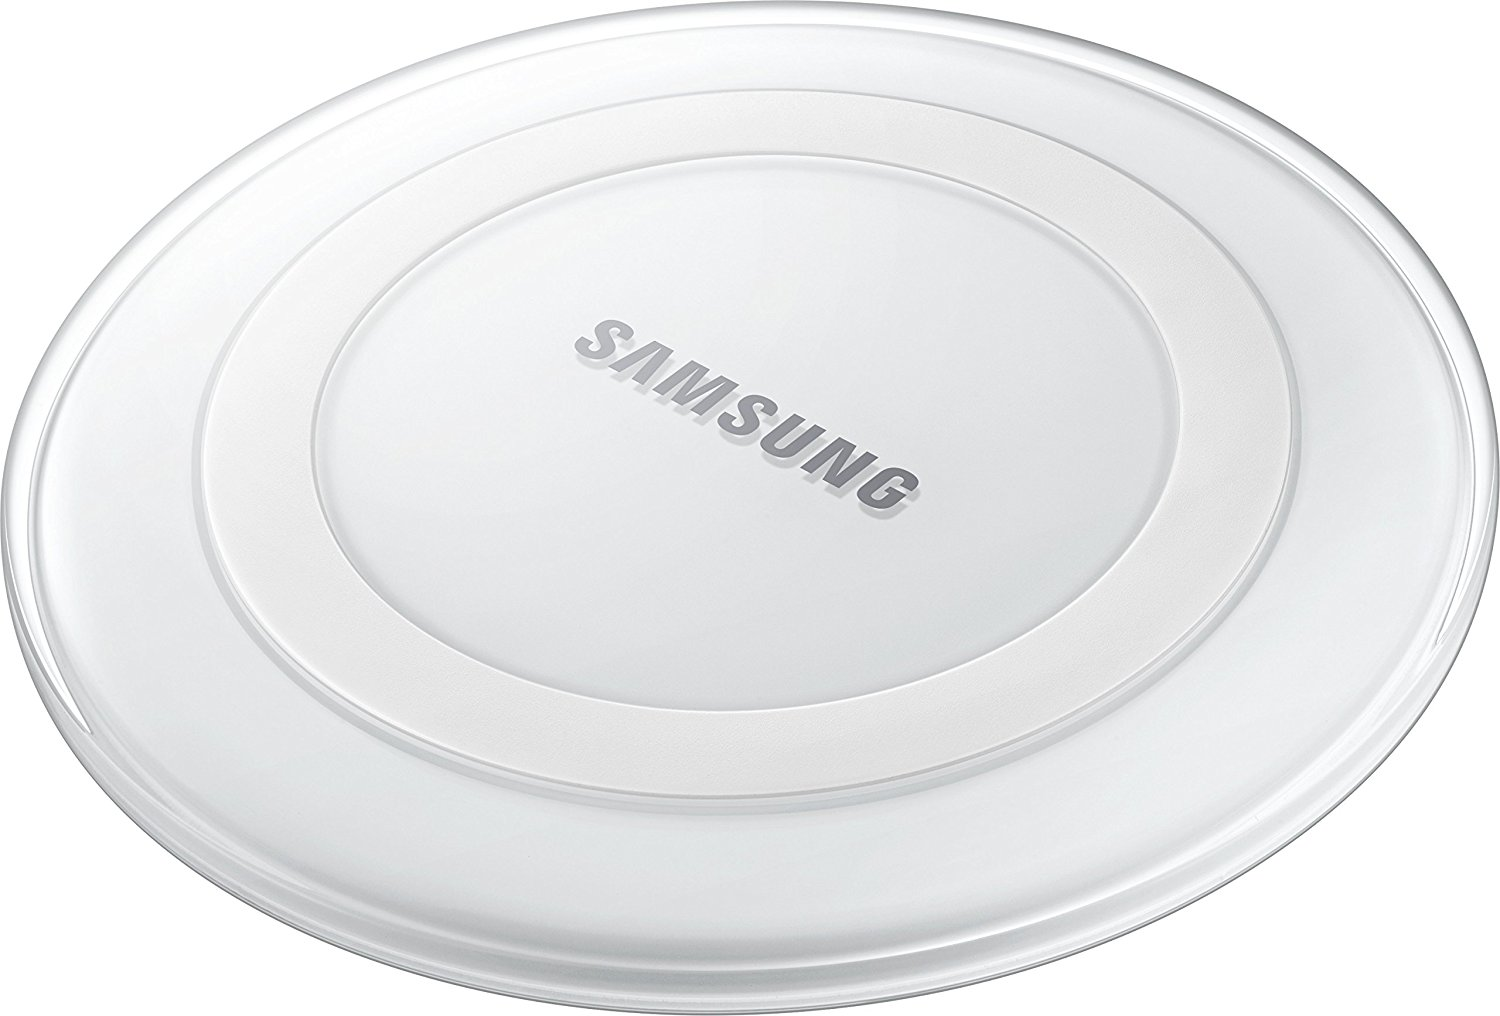 samsung wireless charger qi charger ladestation samsung. Black Bedroom Furniture Sets. Home Design Ideas